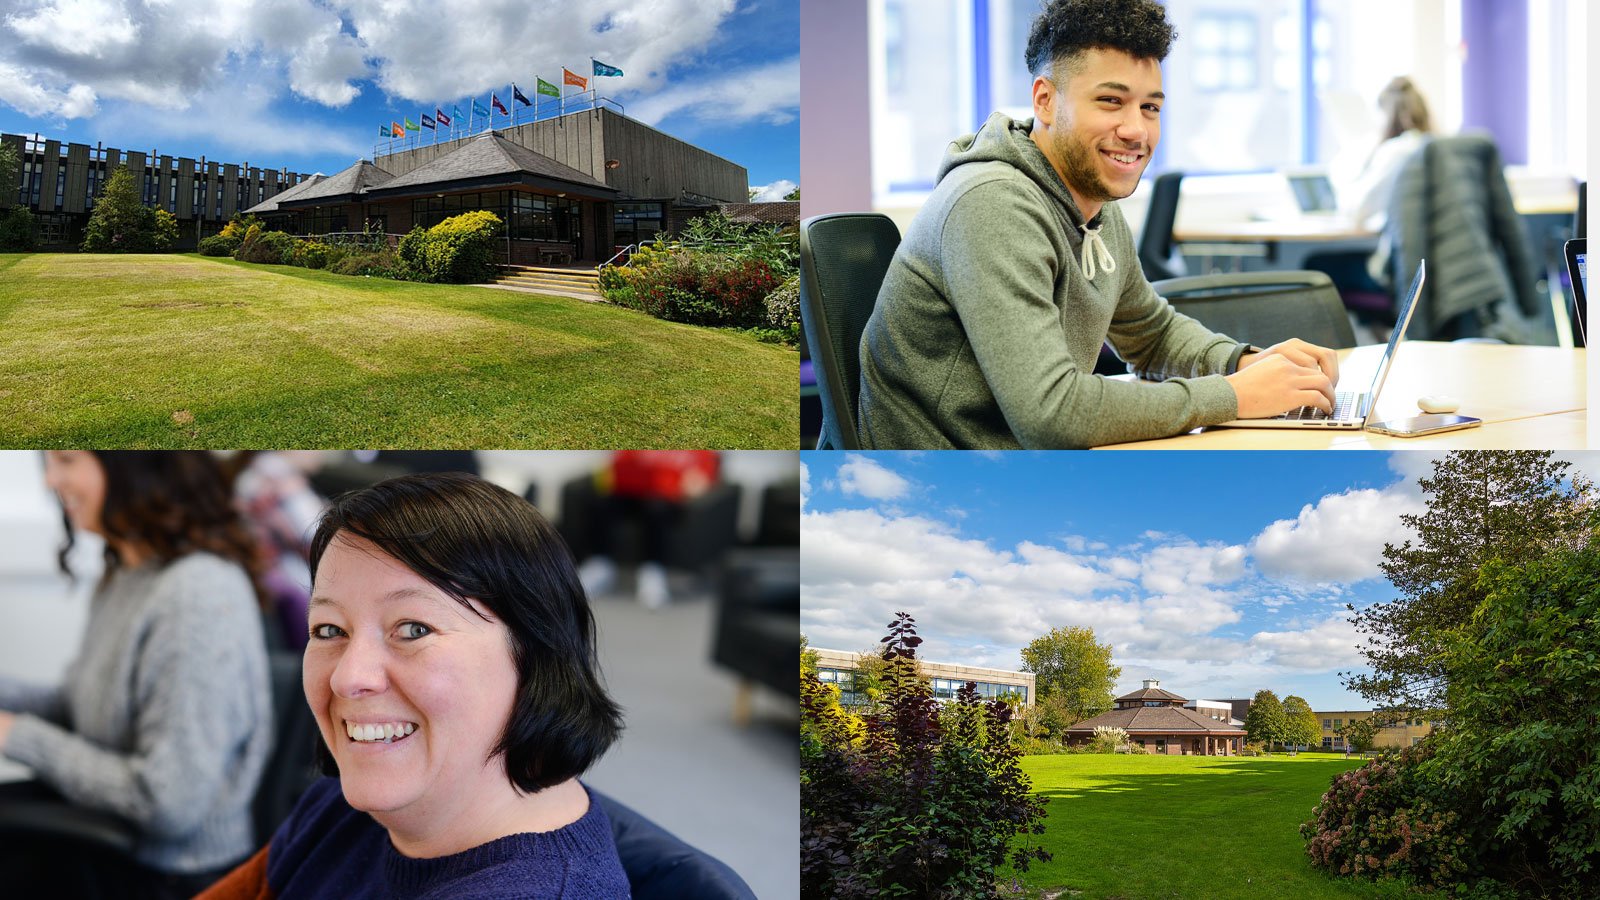 A collage of photos of Marjon campus and students